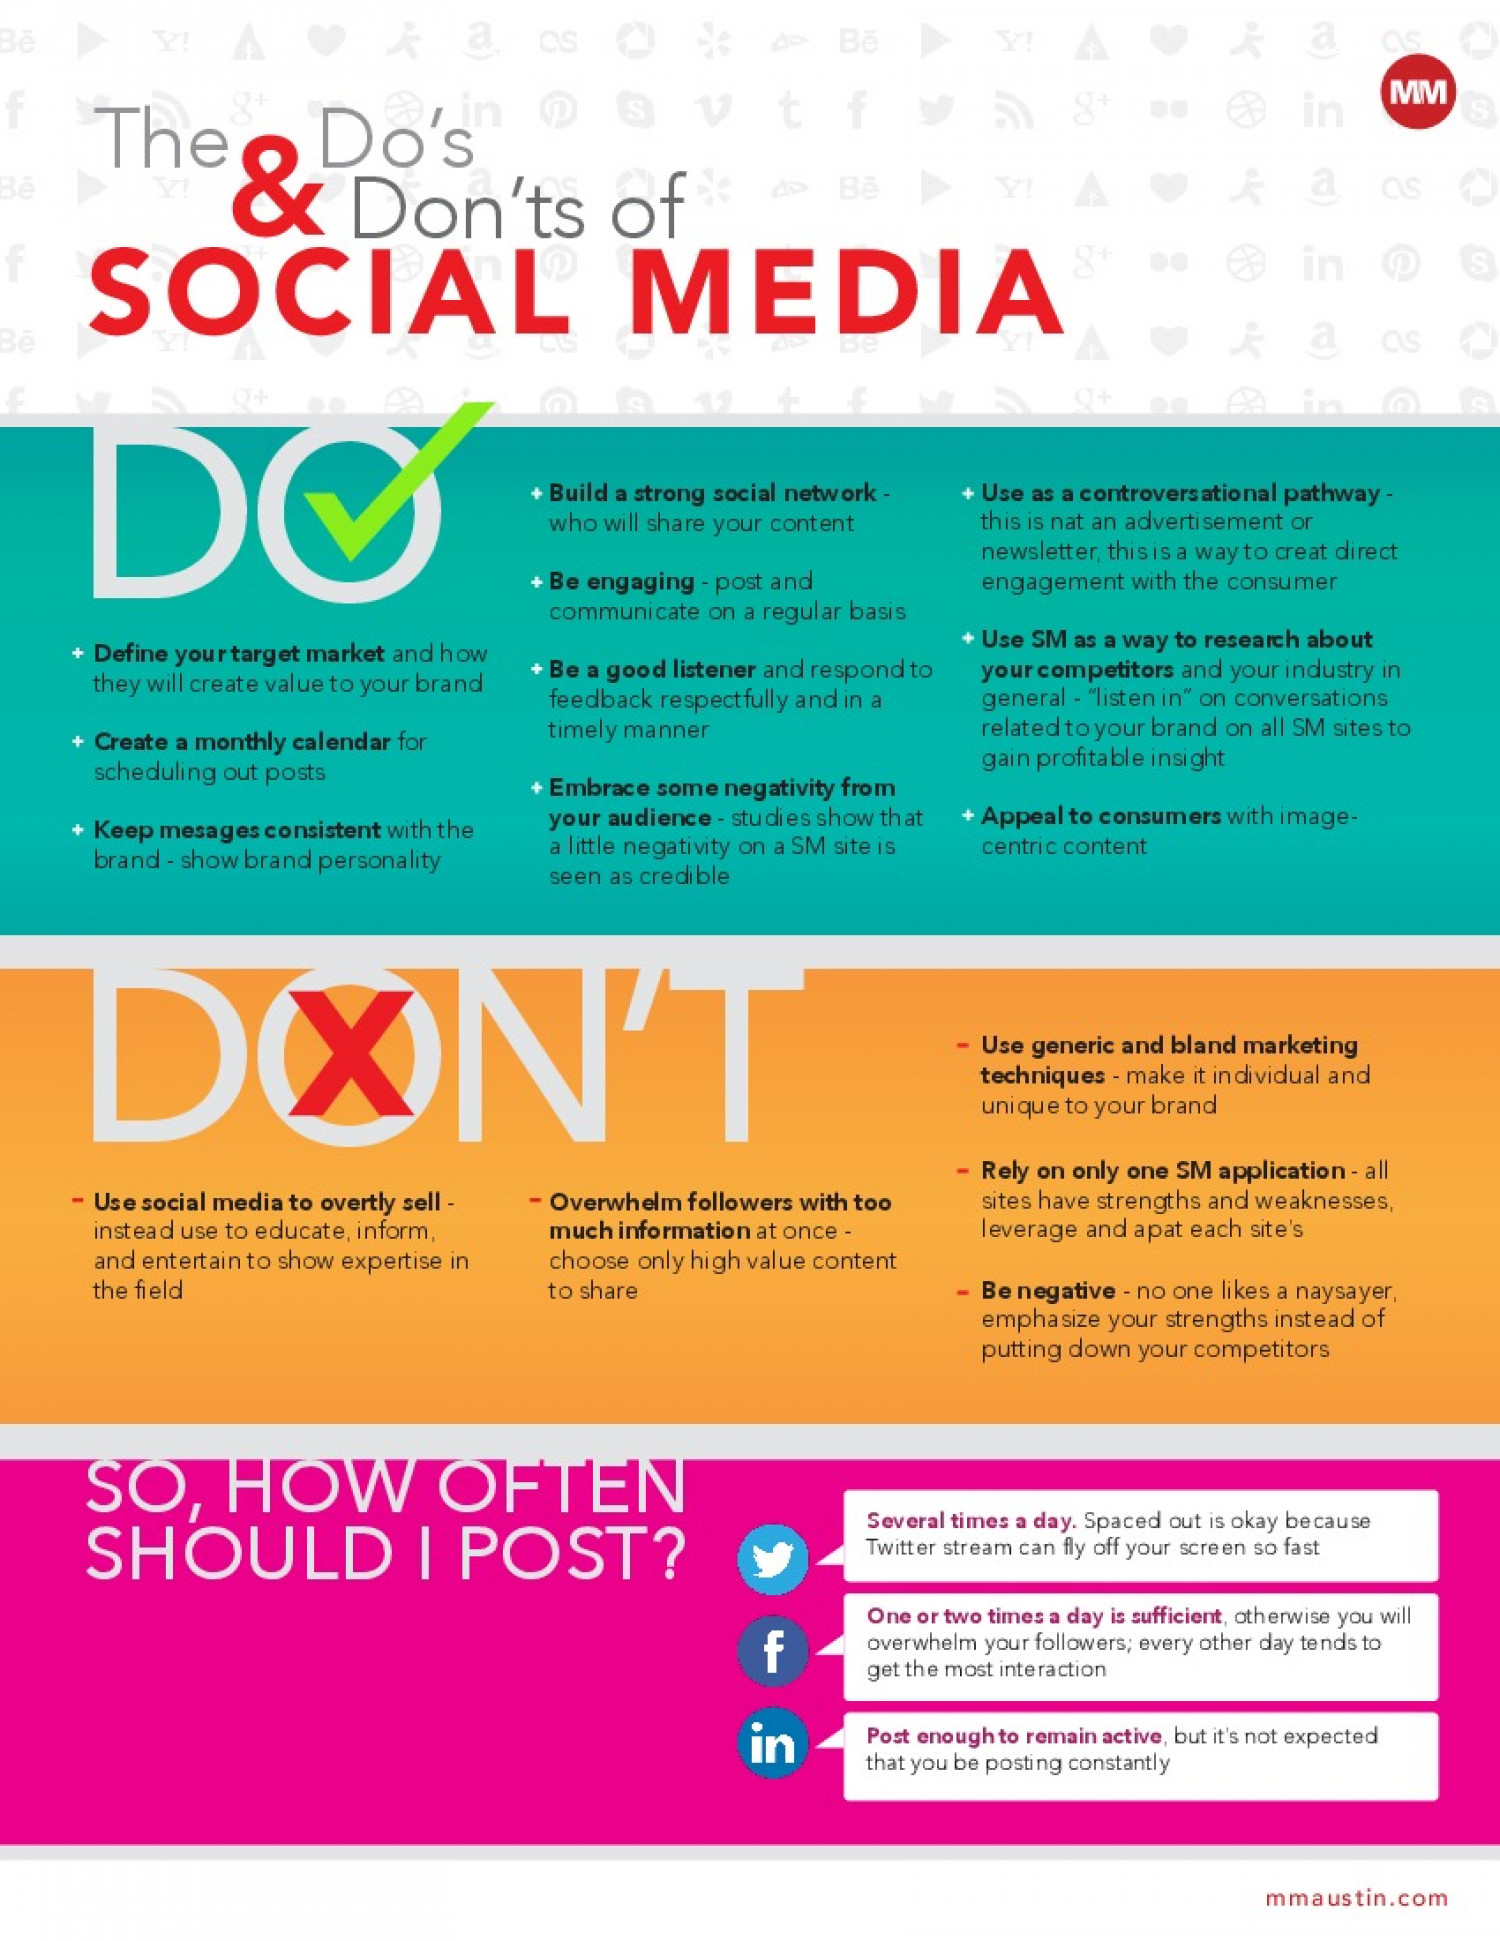 social media company dos and donts This guide, based on the recommendations of leading social media expert brian  solis,  business accounts are no place to share personal views unless they.